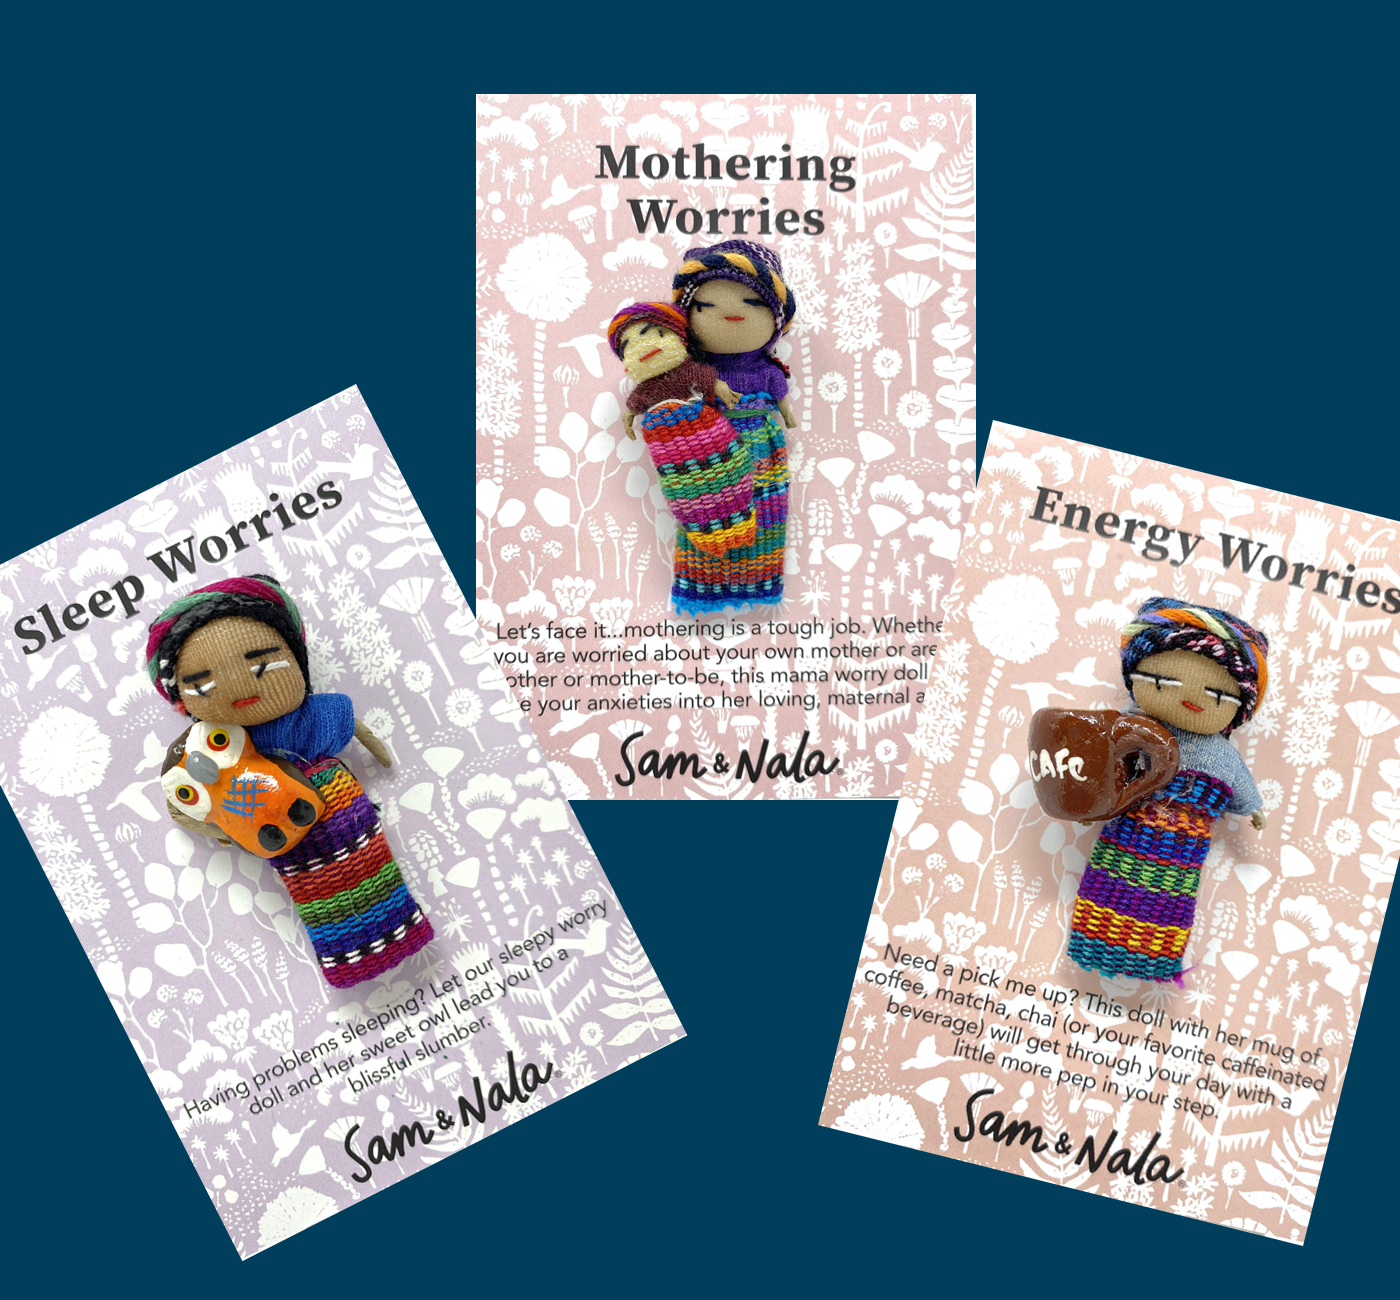 3 Mom Pack- includes 1 each of